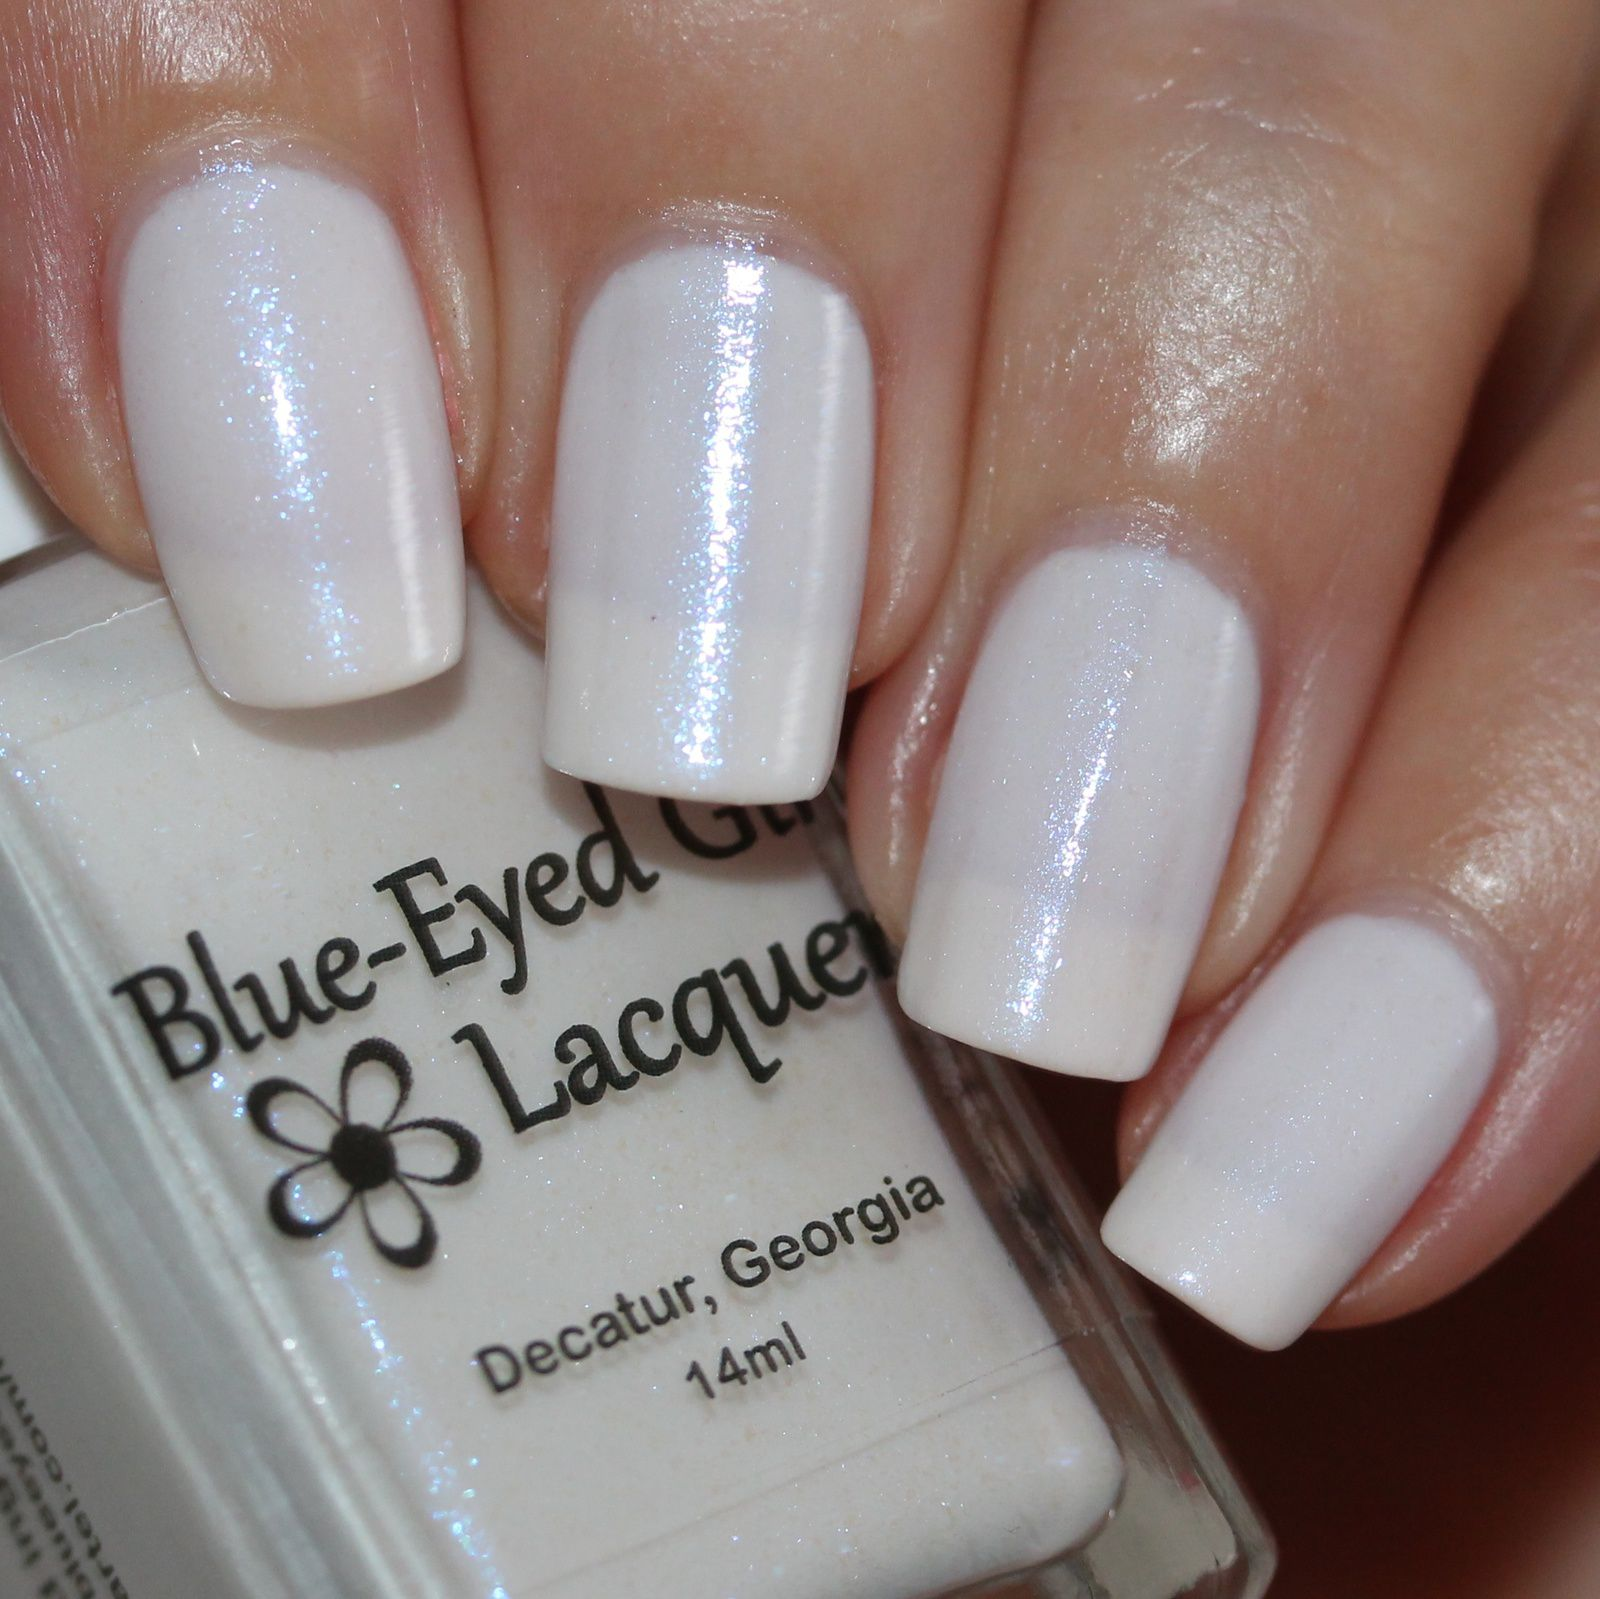 Duri Rejuvacote / Blue-Eyed Girl Lacquer Untrodden Snow / HK Girl Top Coat